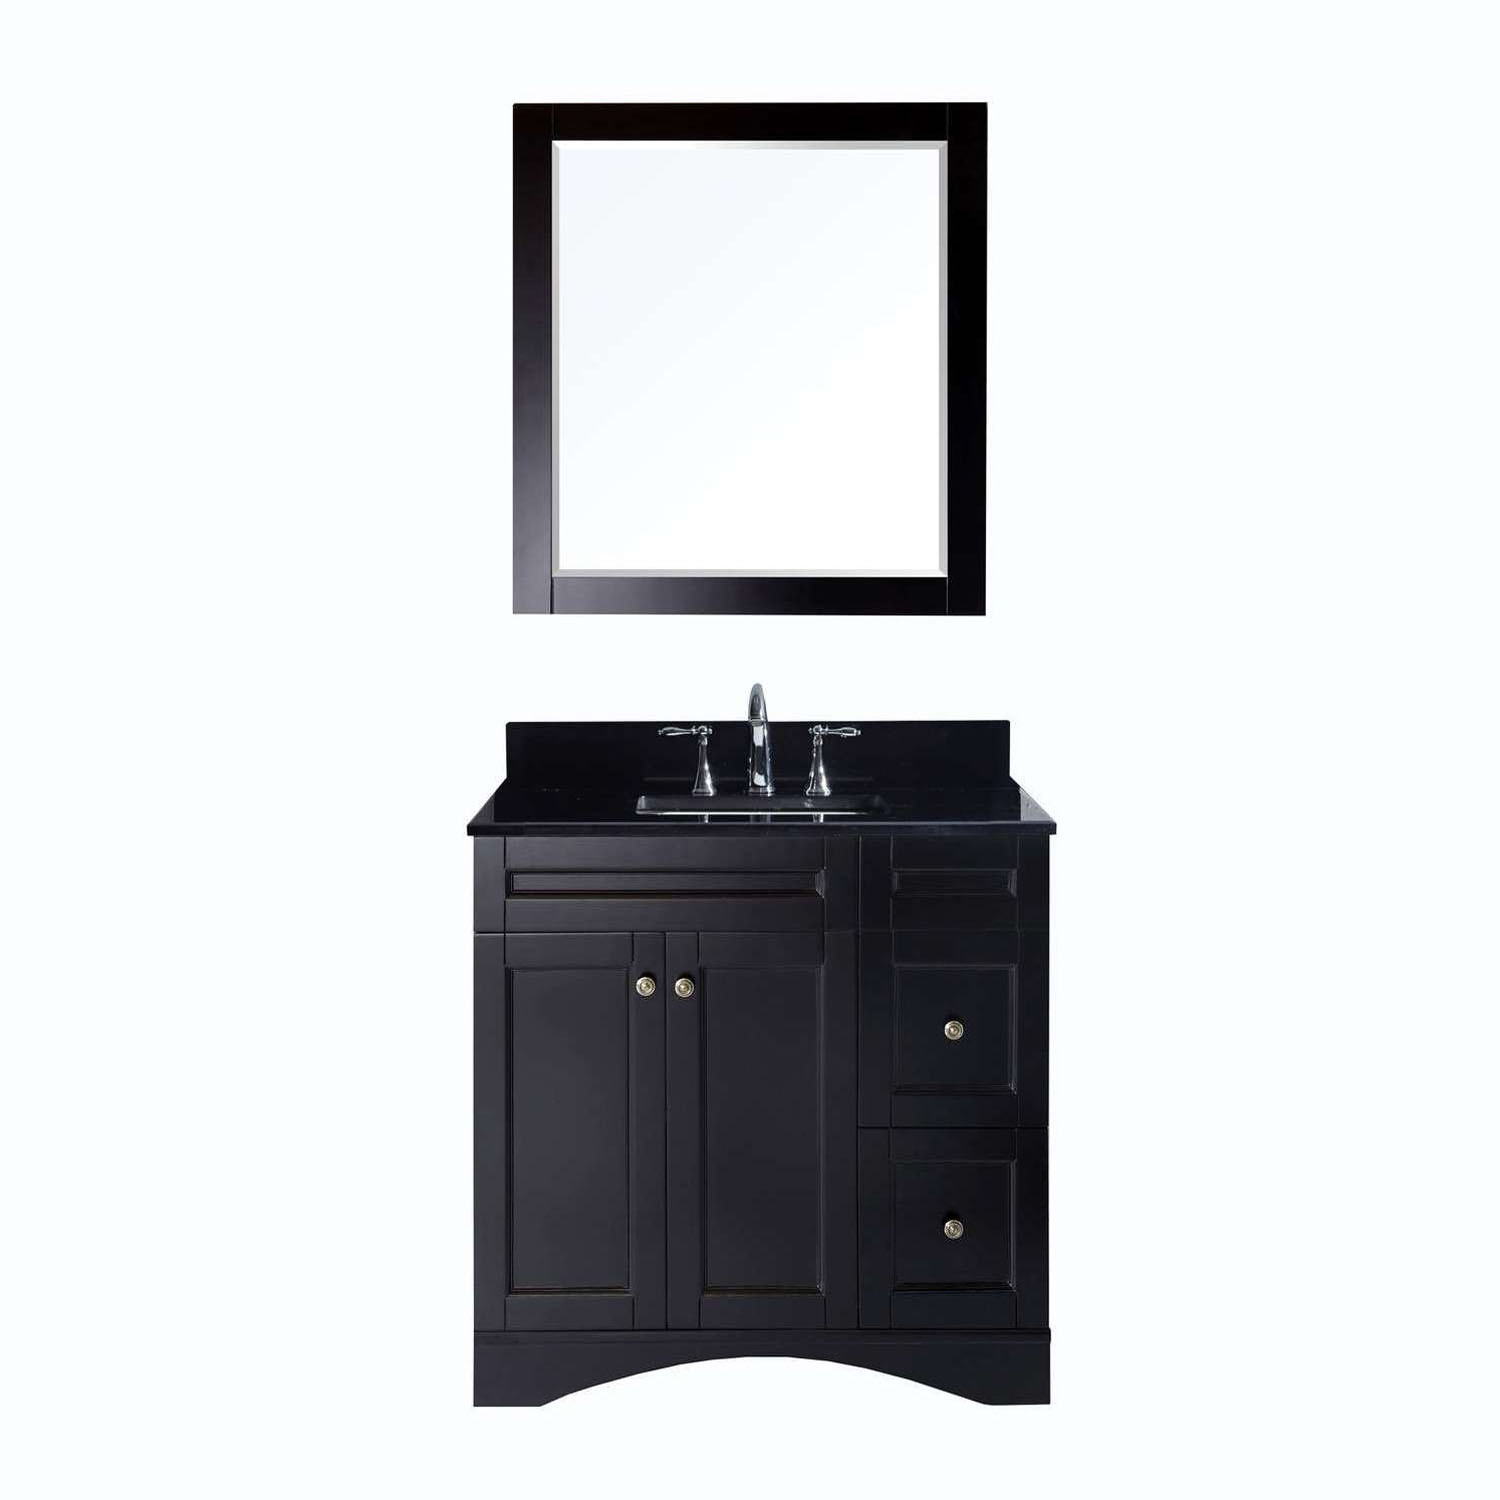 Virtu ES-32036-BGSQ-ES Elise 36 Inch Single Bathroom Vanity Set In Espresso